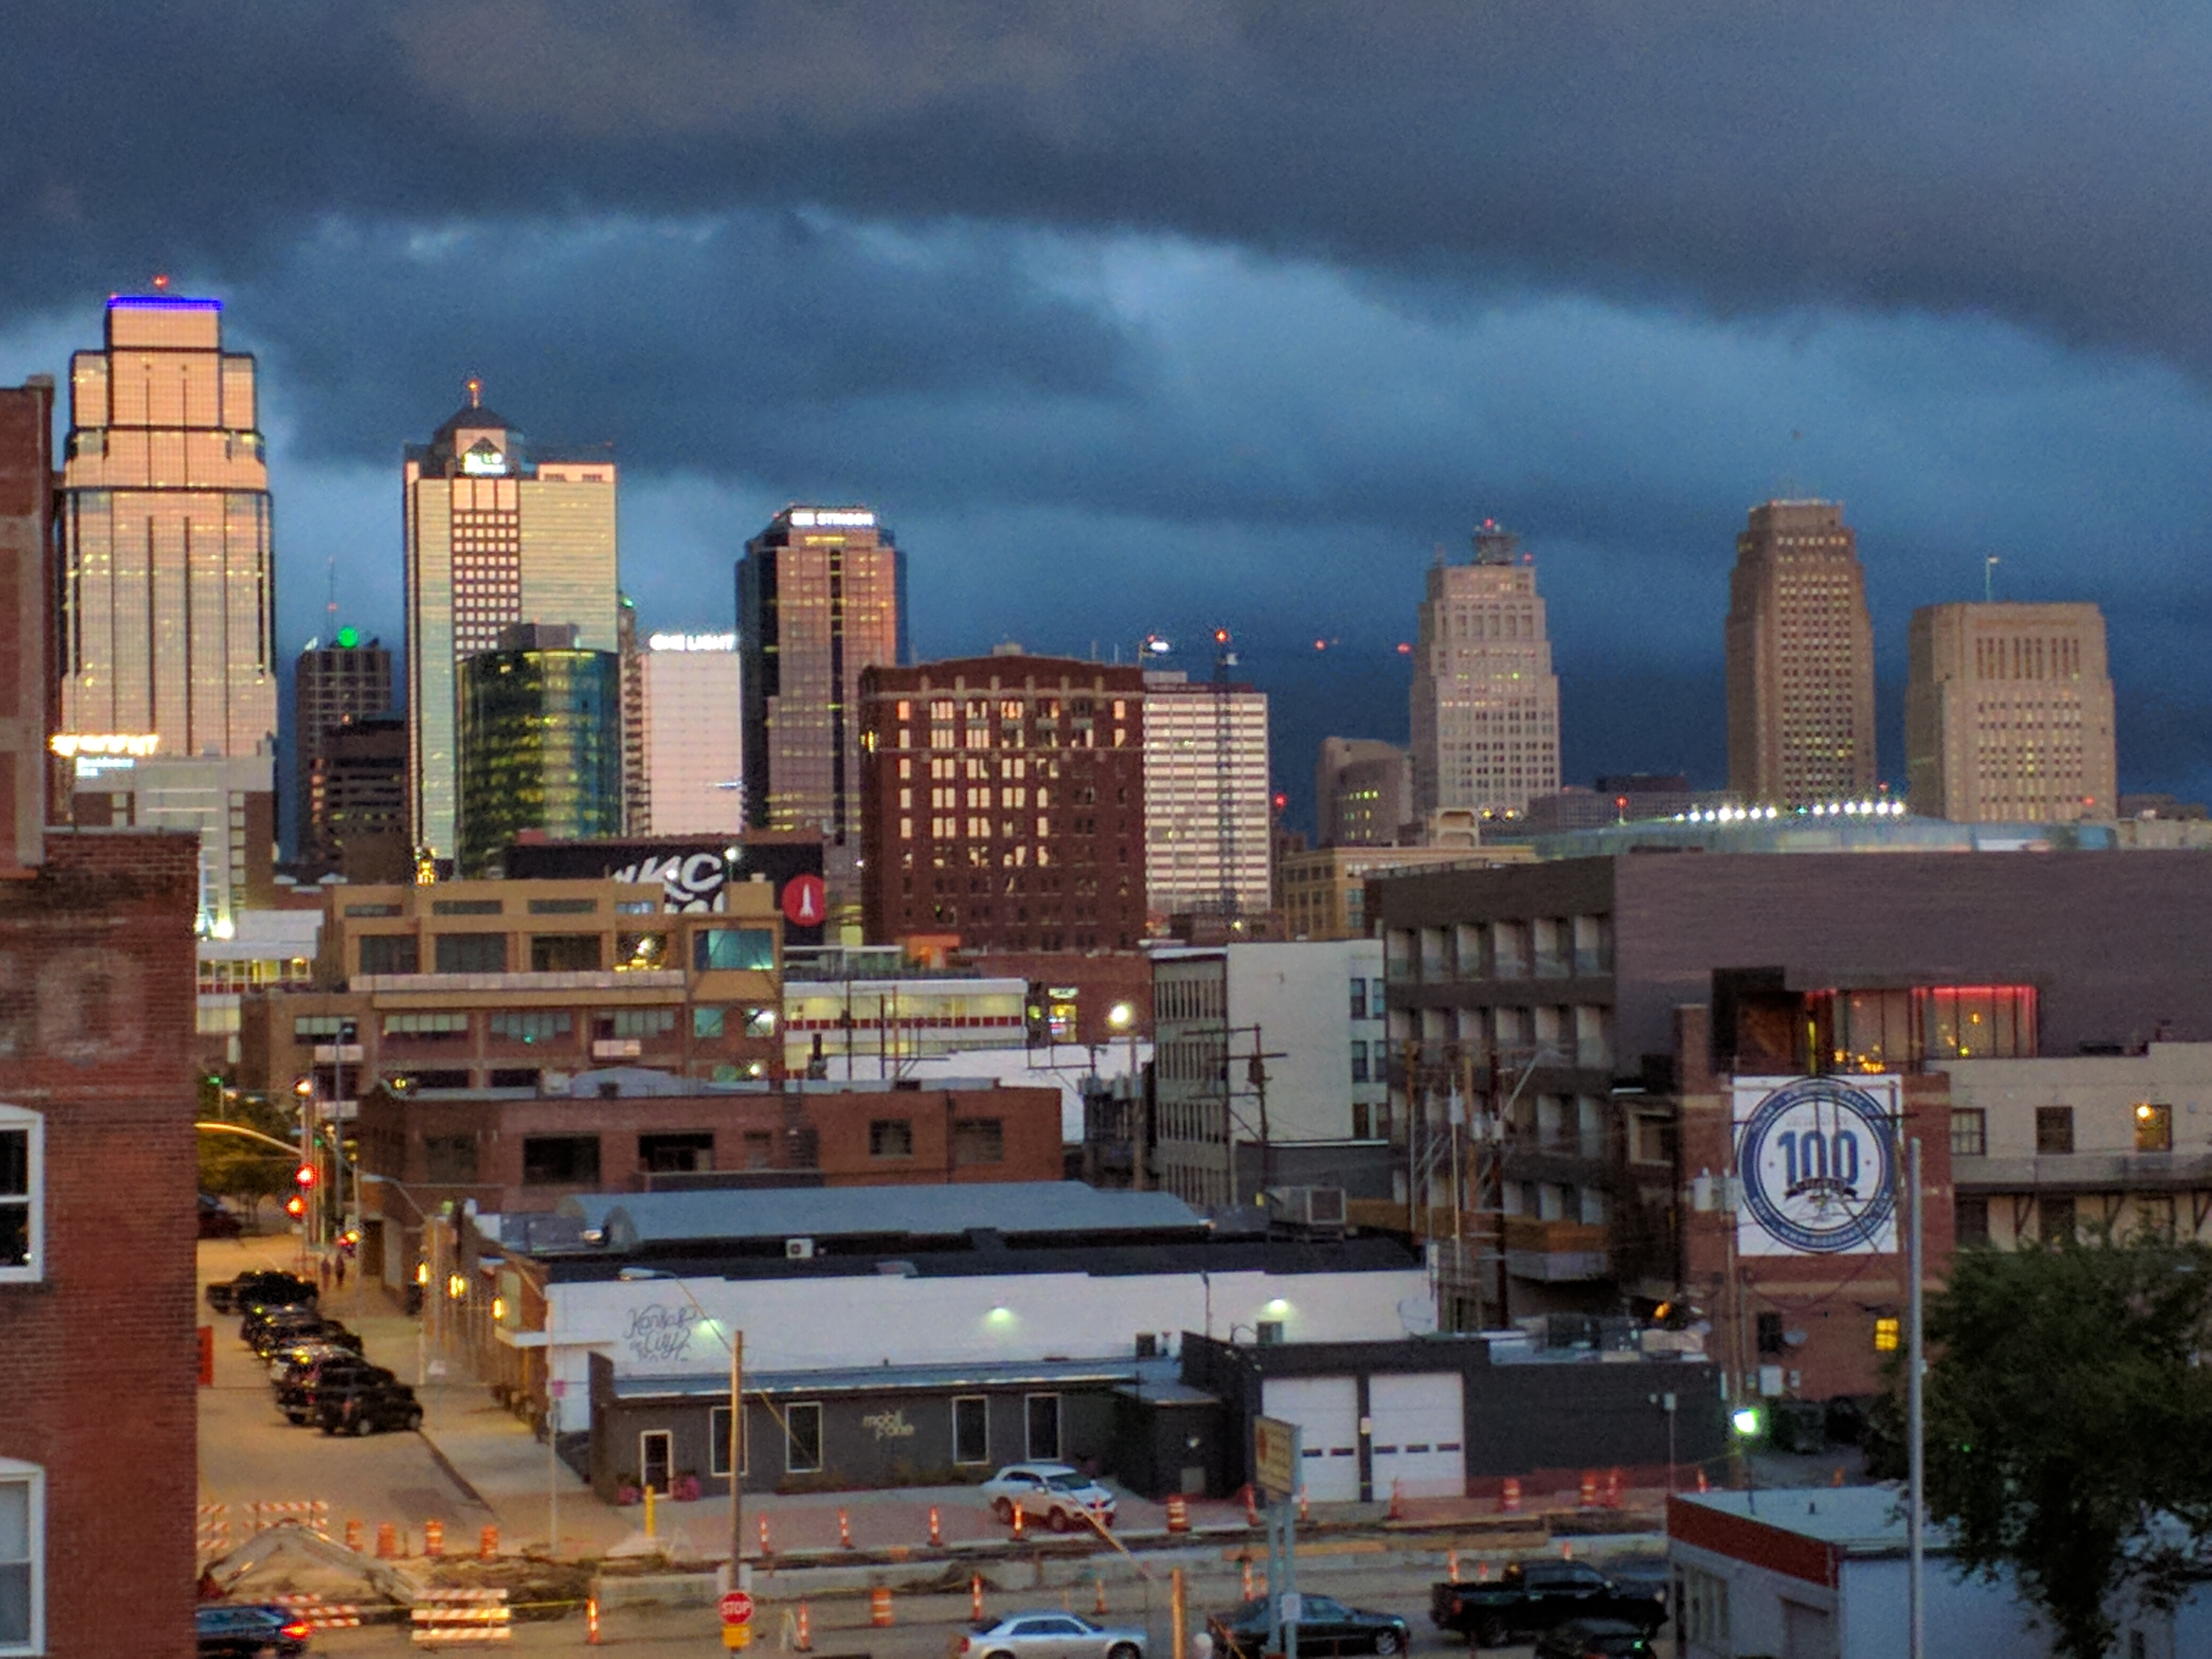 Downtown KC before the storm